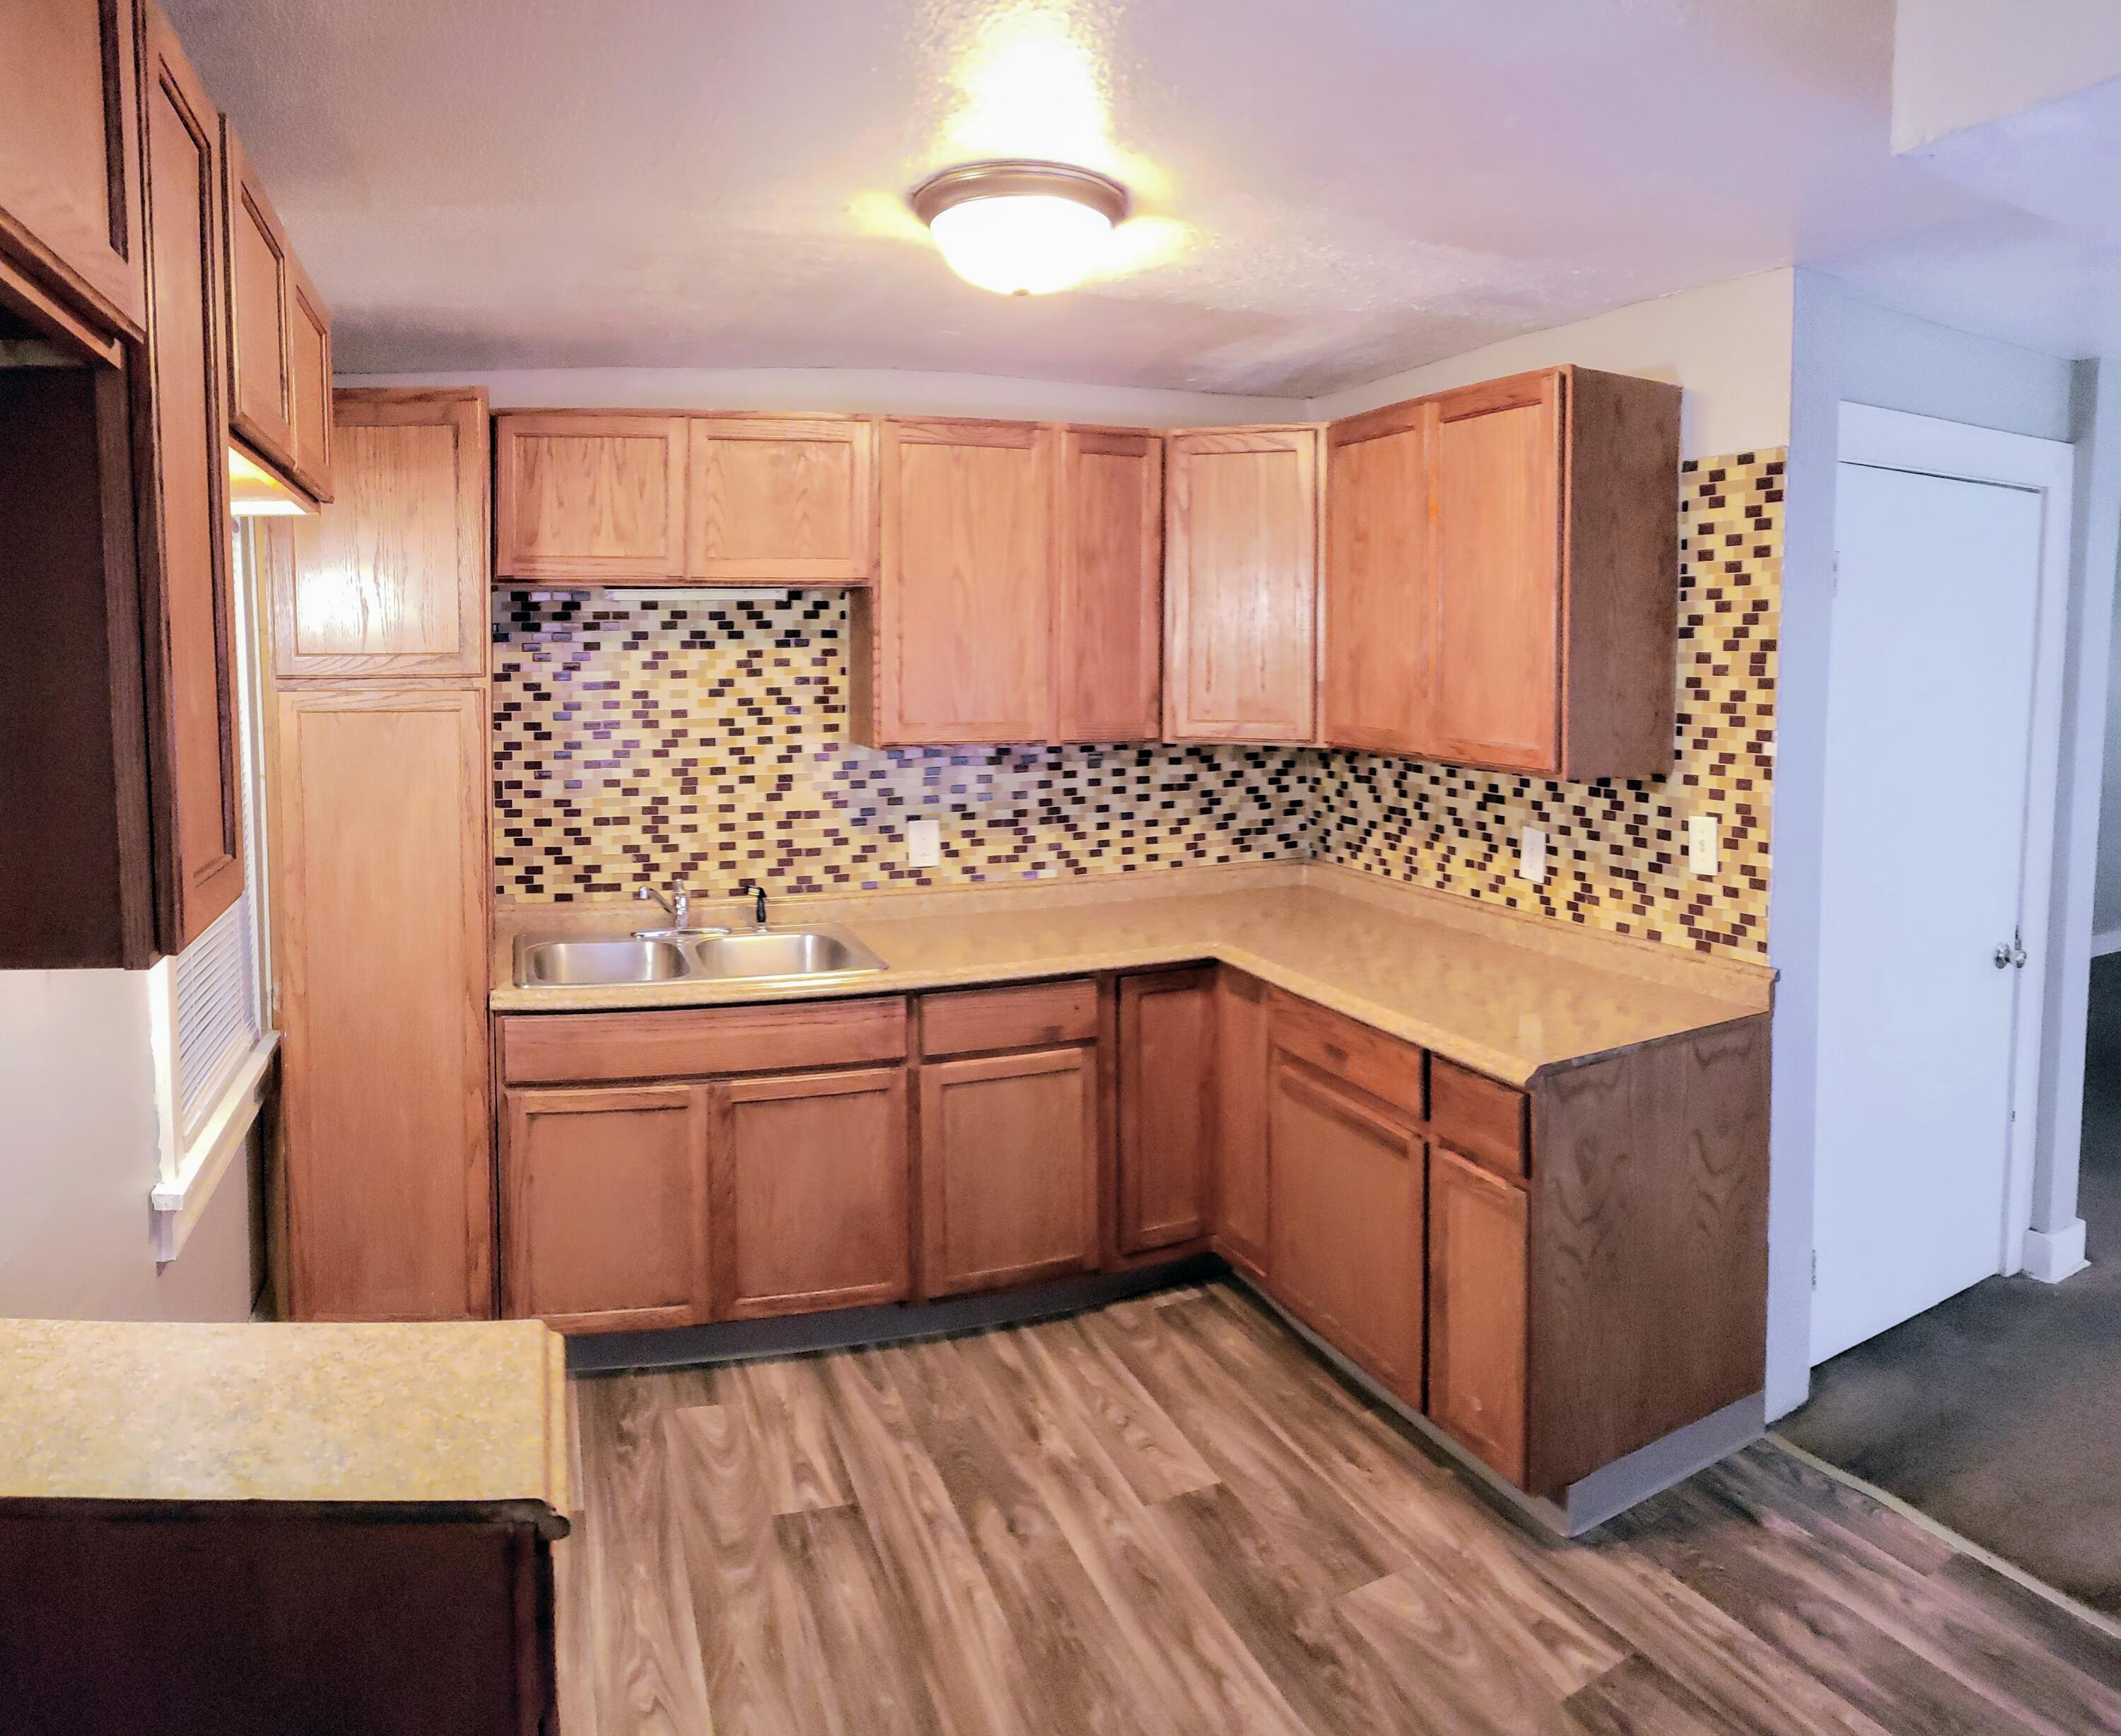 4725 Fond du Lac Ave, Milwaukee, Wisconsin 53216, 3 Bedrooms Bedrooms, 7 Rooms Rooms,1 BathroomBathrooms,Single-Family,For Sale,Fond du Lac Ave,1768193